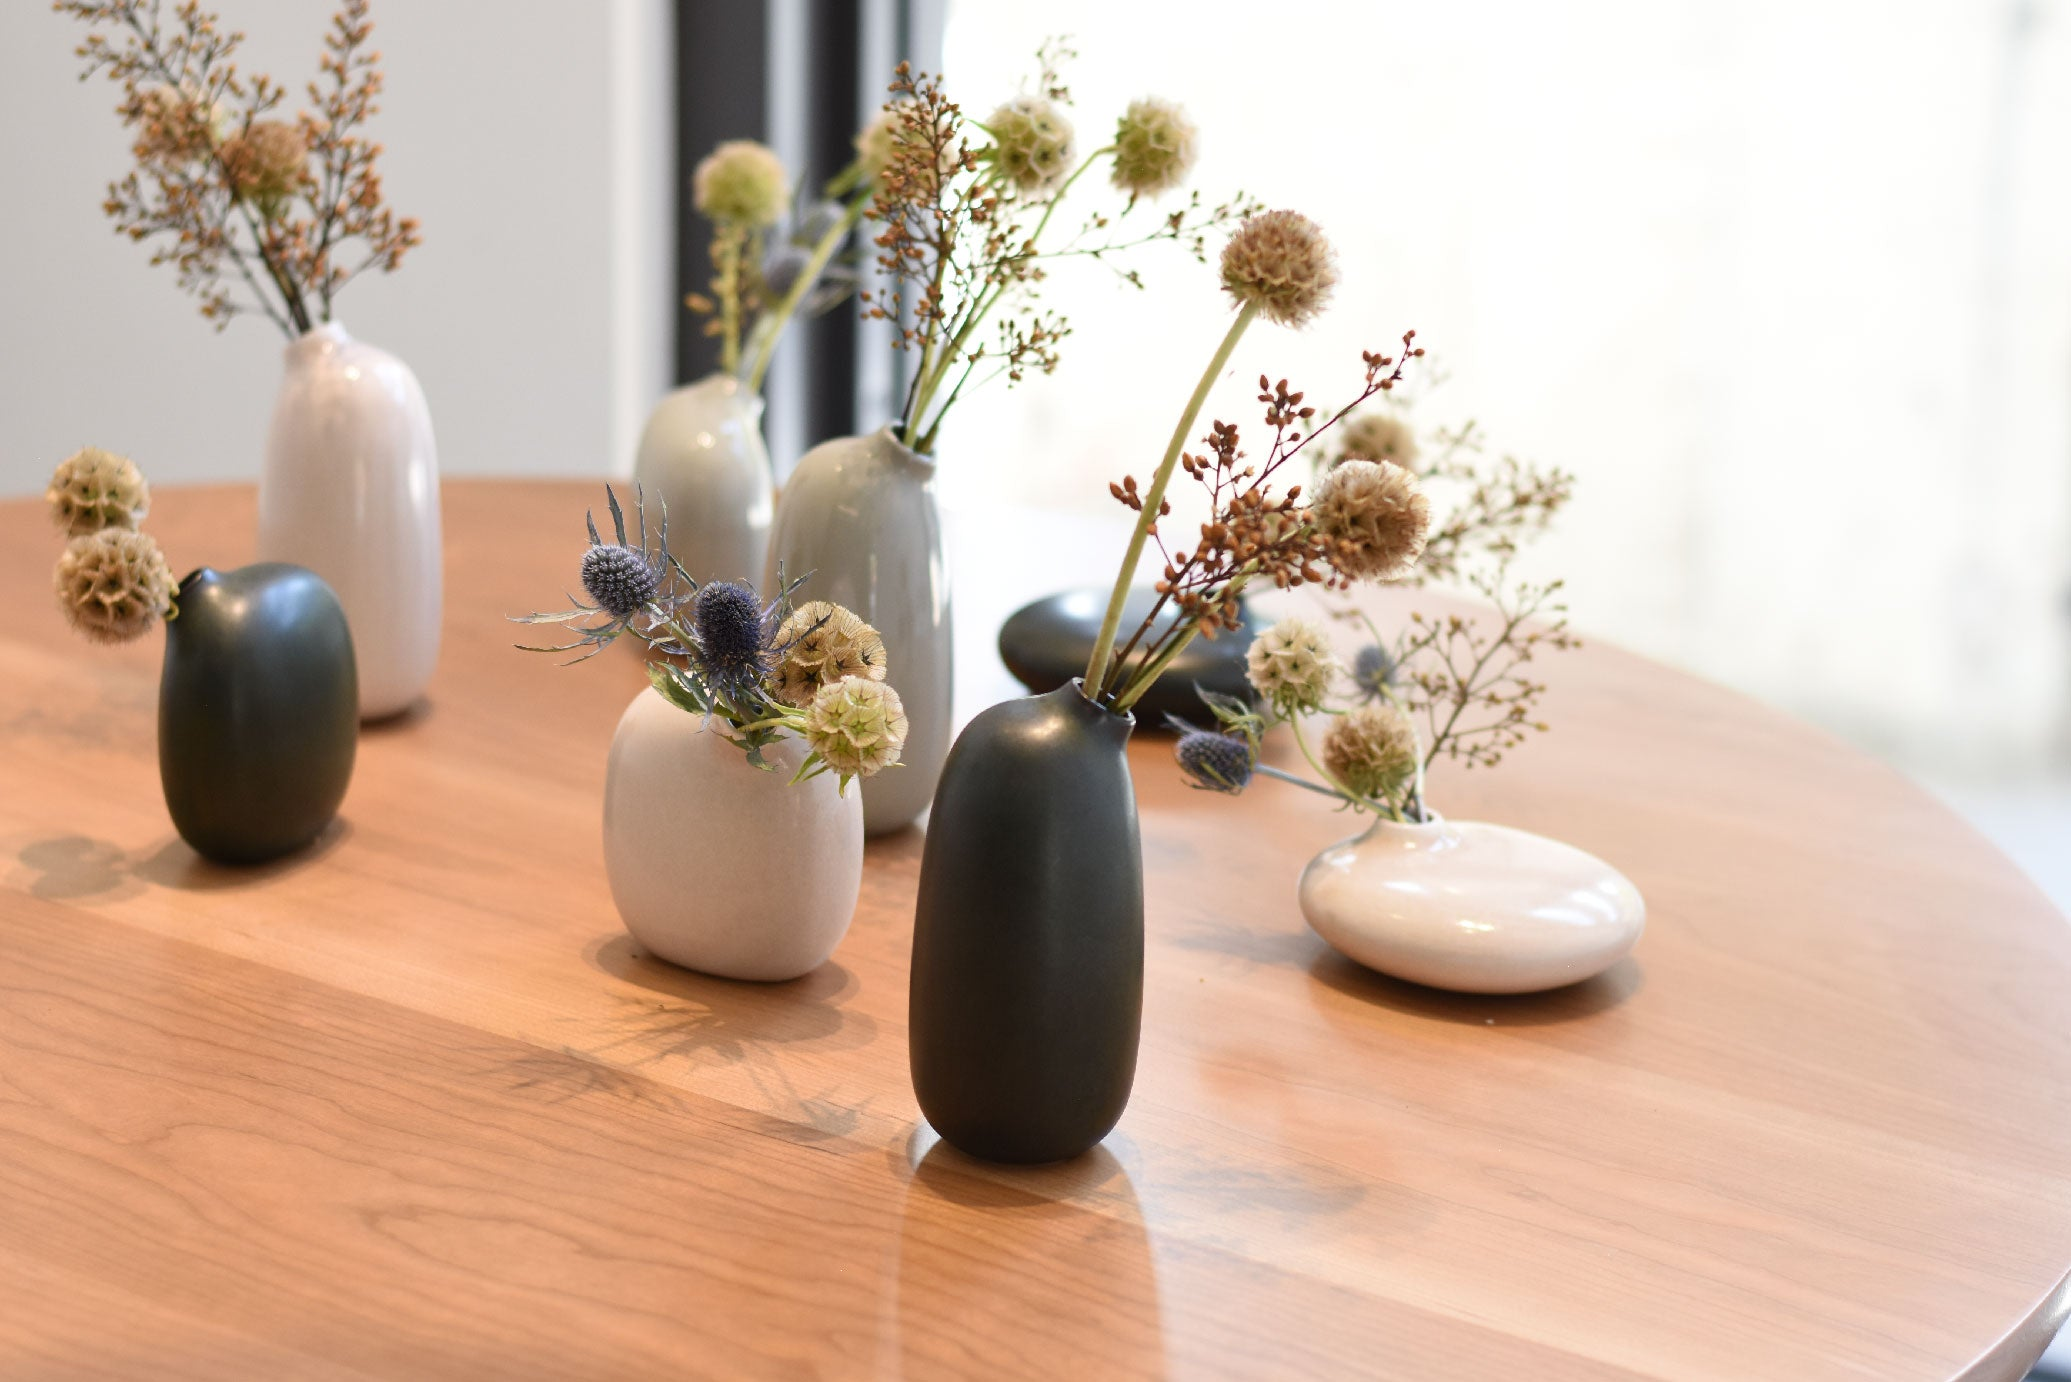 Dried flowers in SACCO vase porcelain on display table